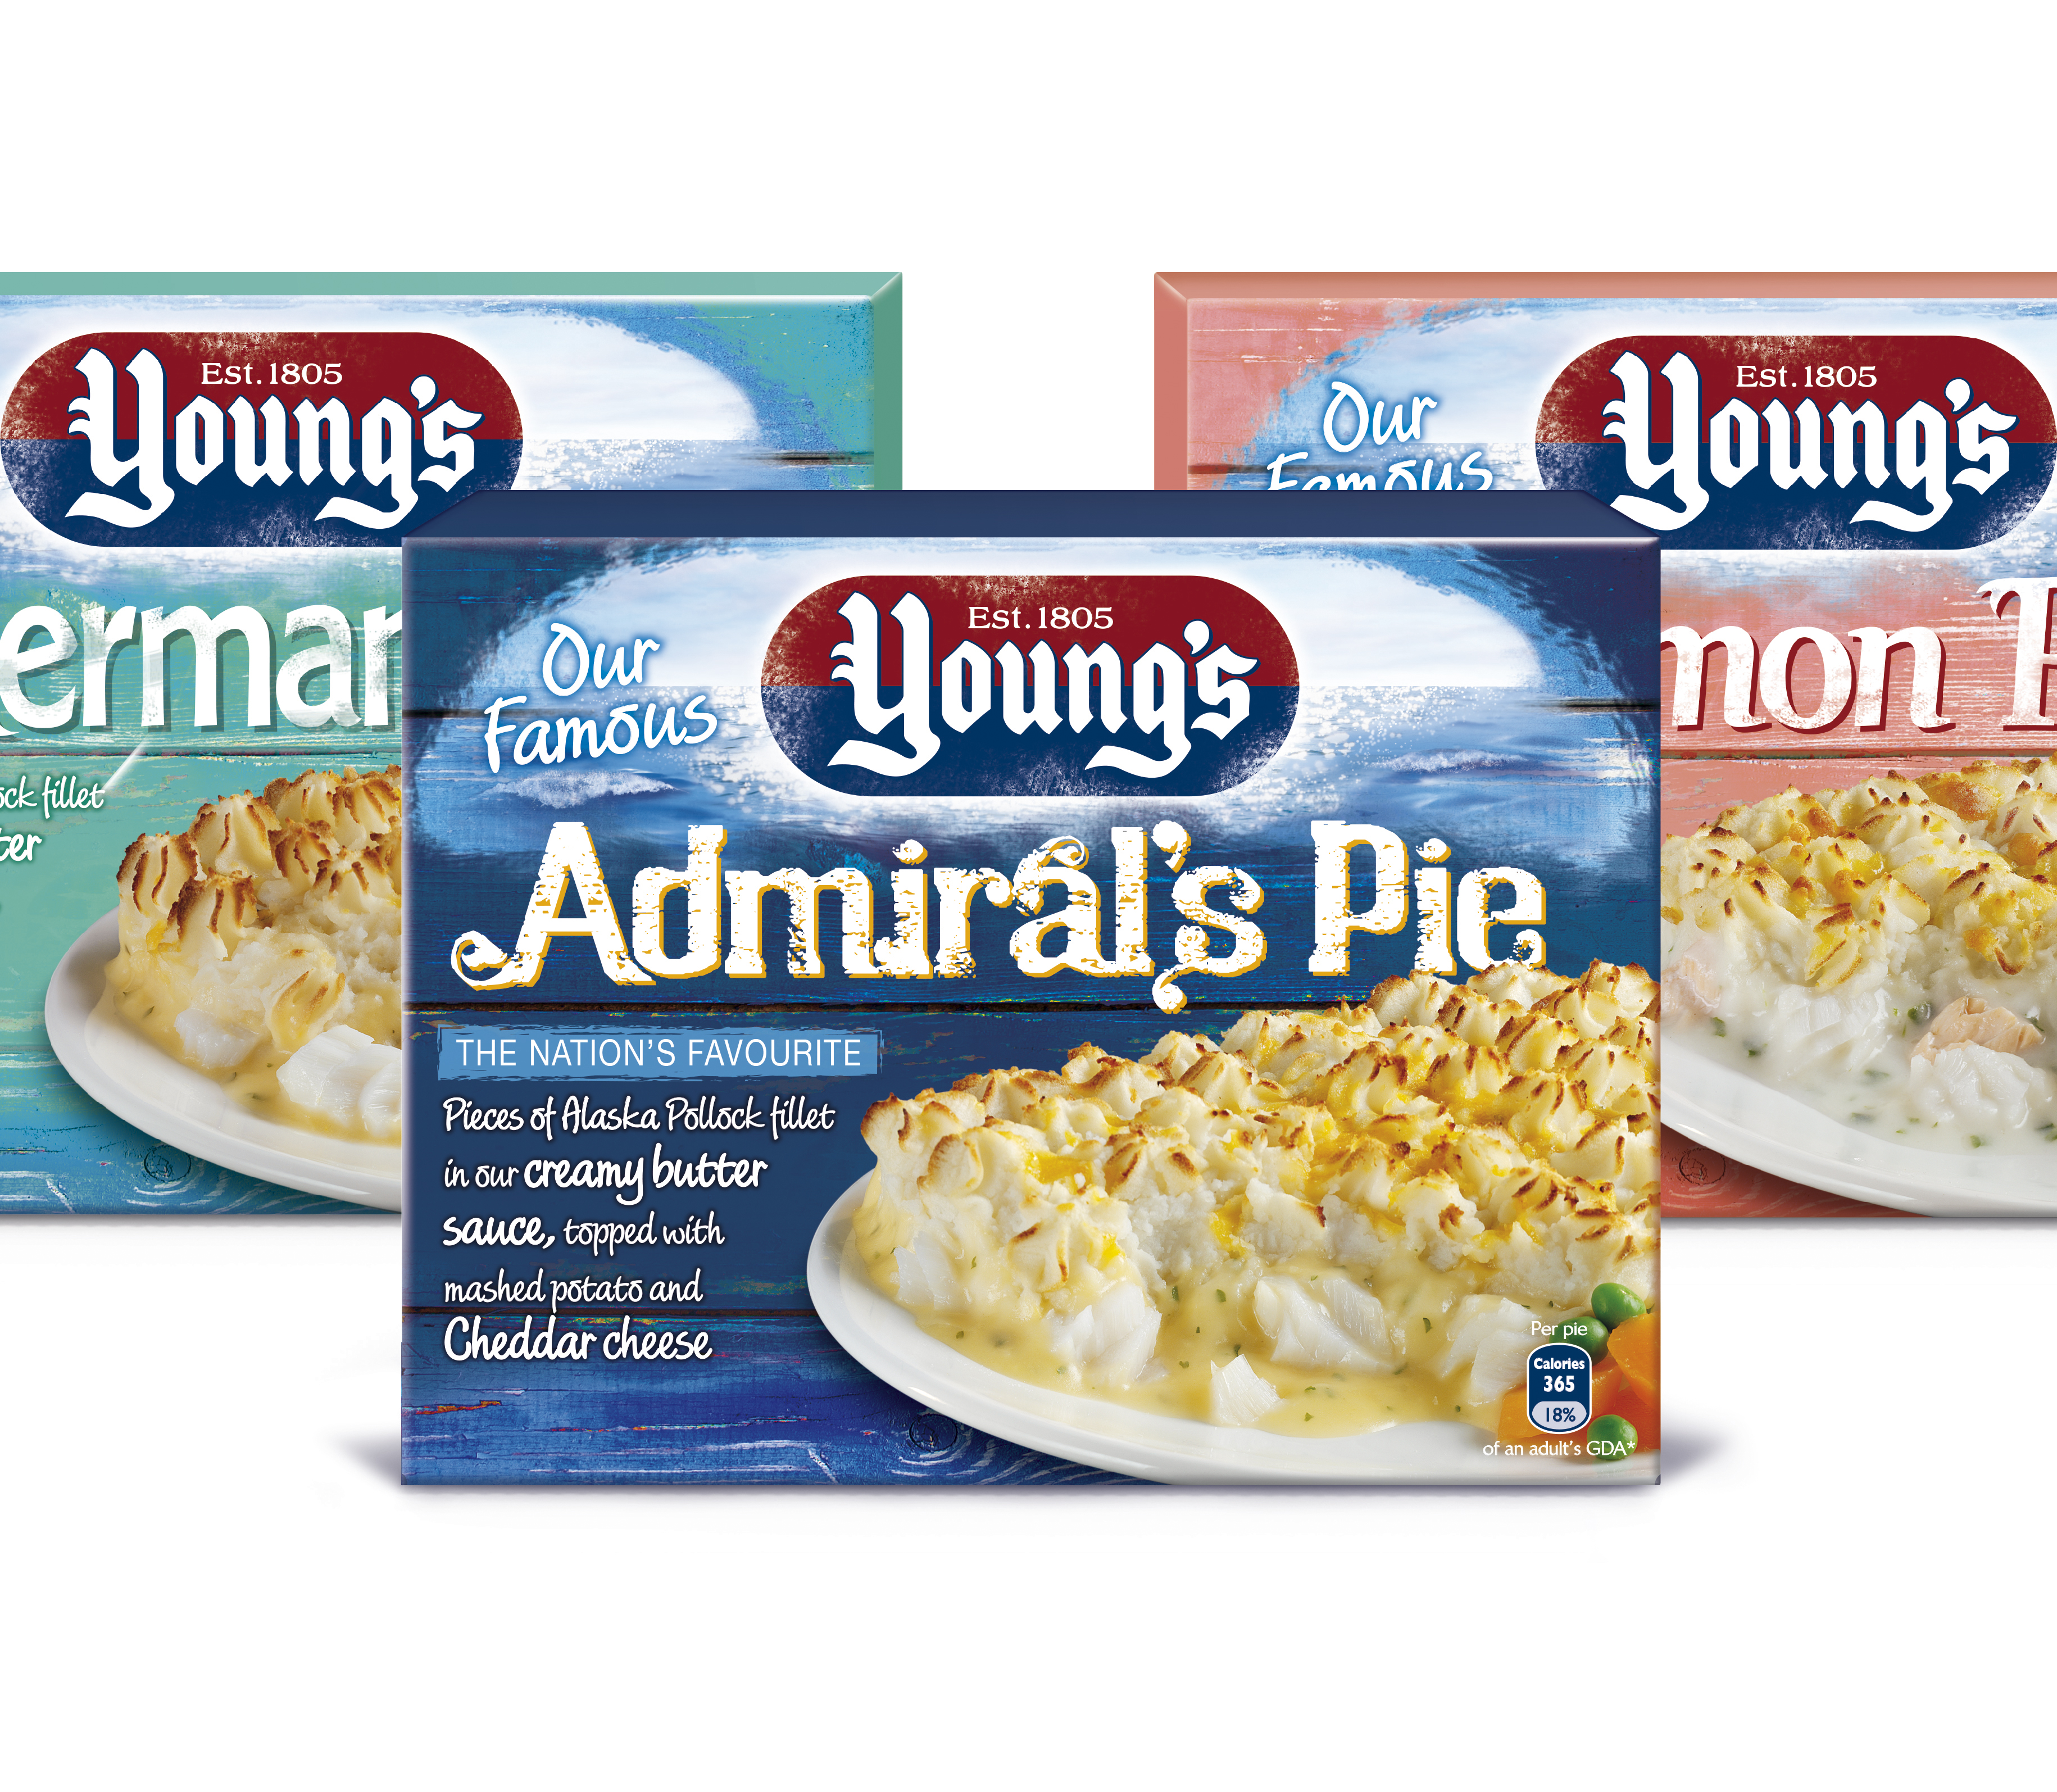 Photo: Young's Pies, new packaging